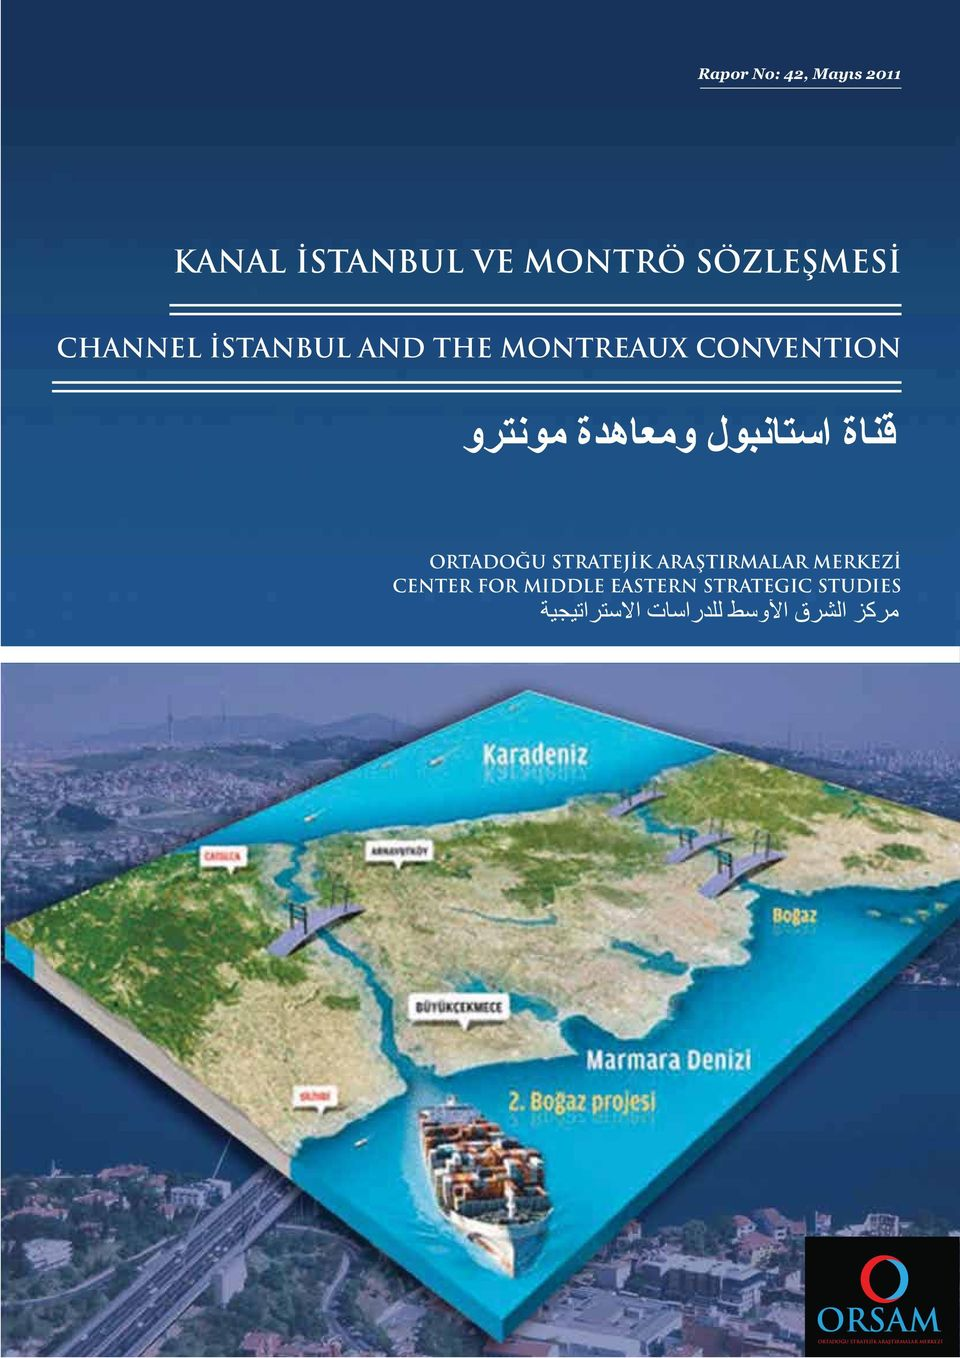 STRATEJİK ARAŞTIRMALAR MERKEZİ CENTER FOR MIDDLE